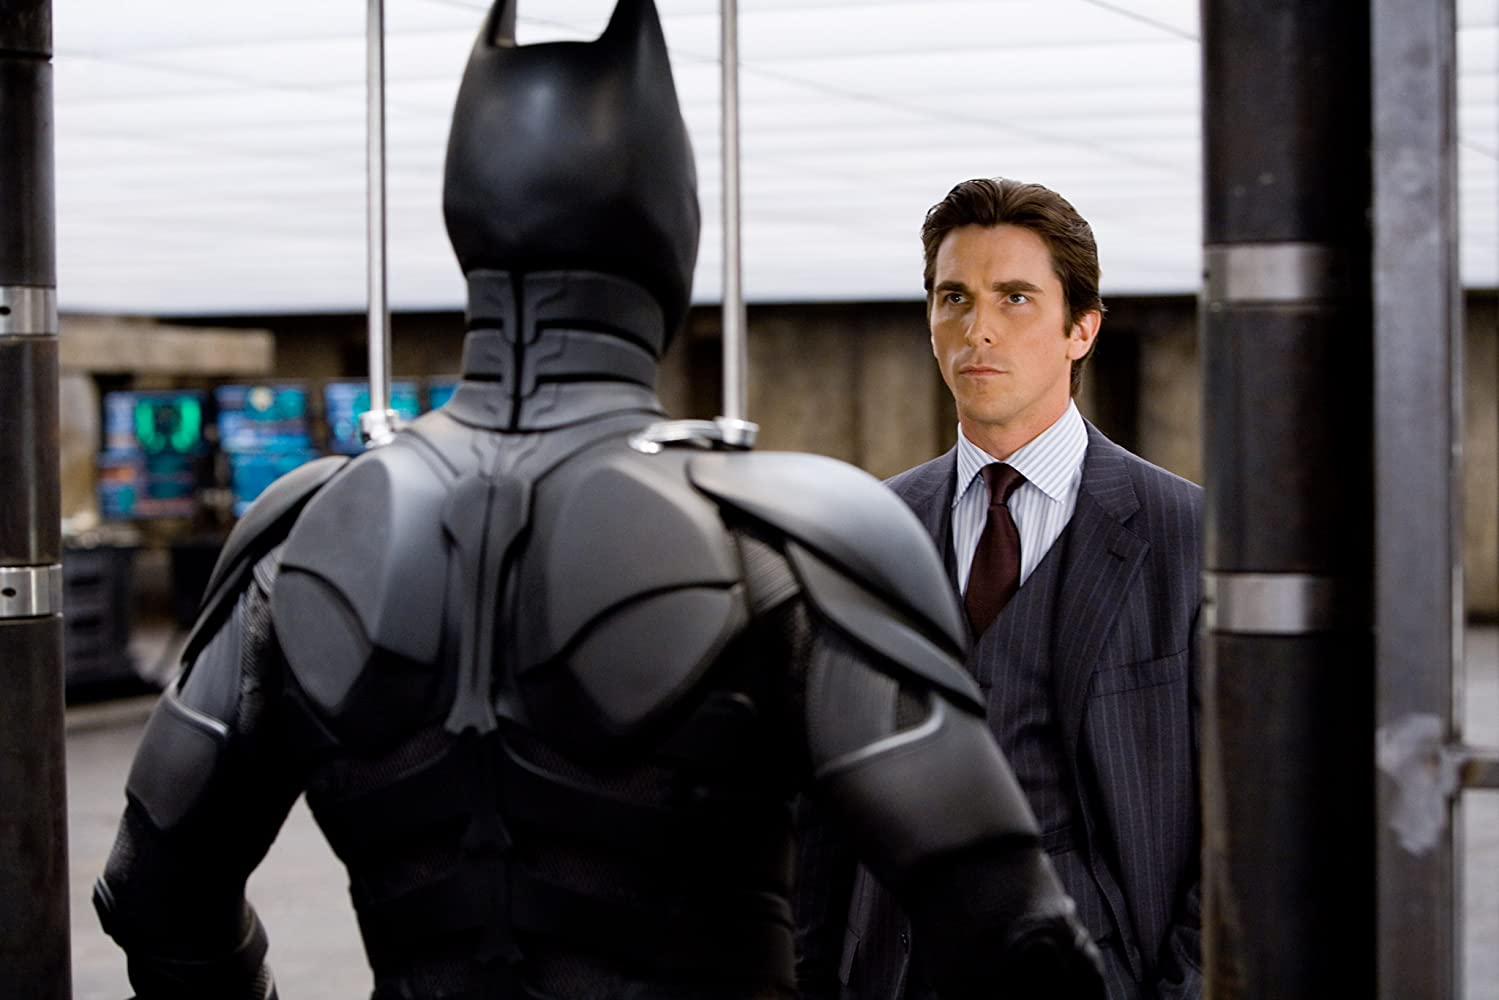 Christian Bale in The Dark Knight (2008)